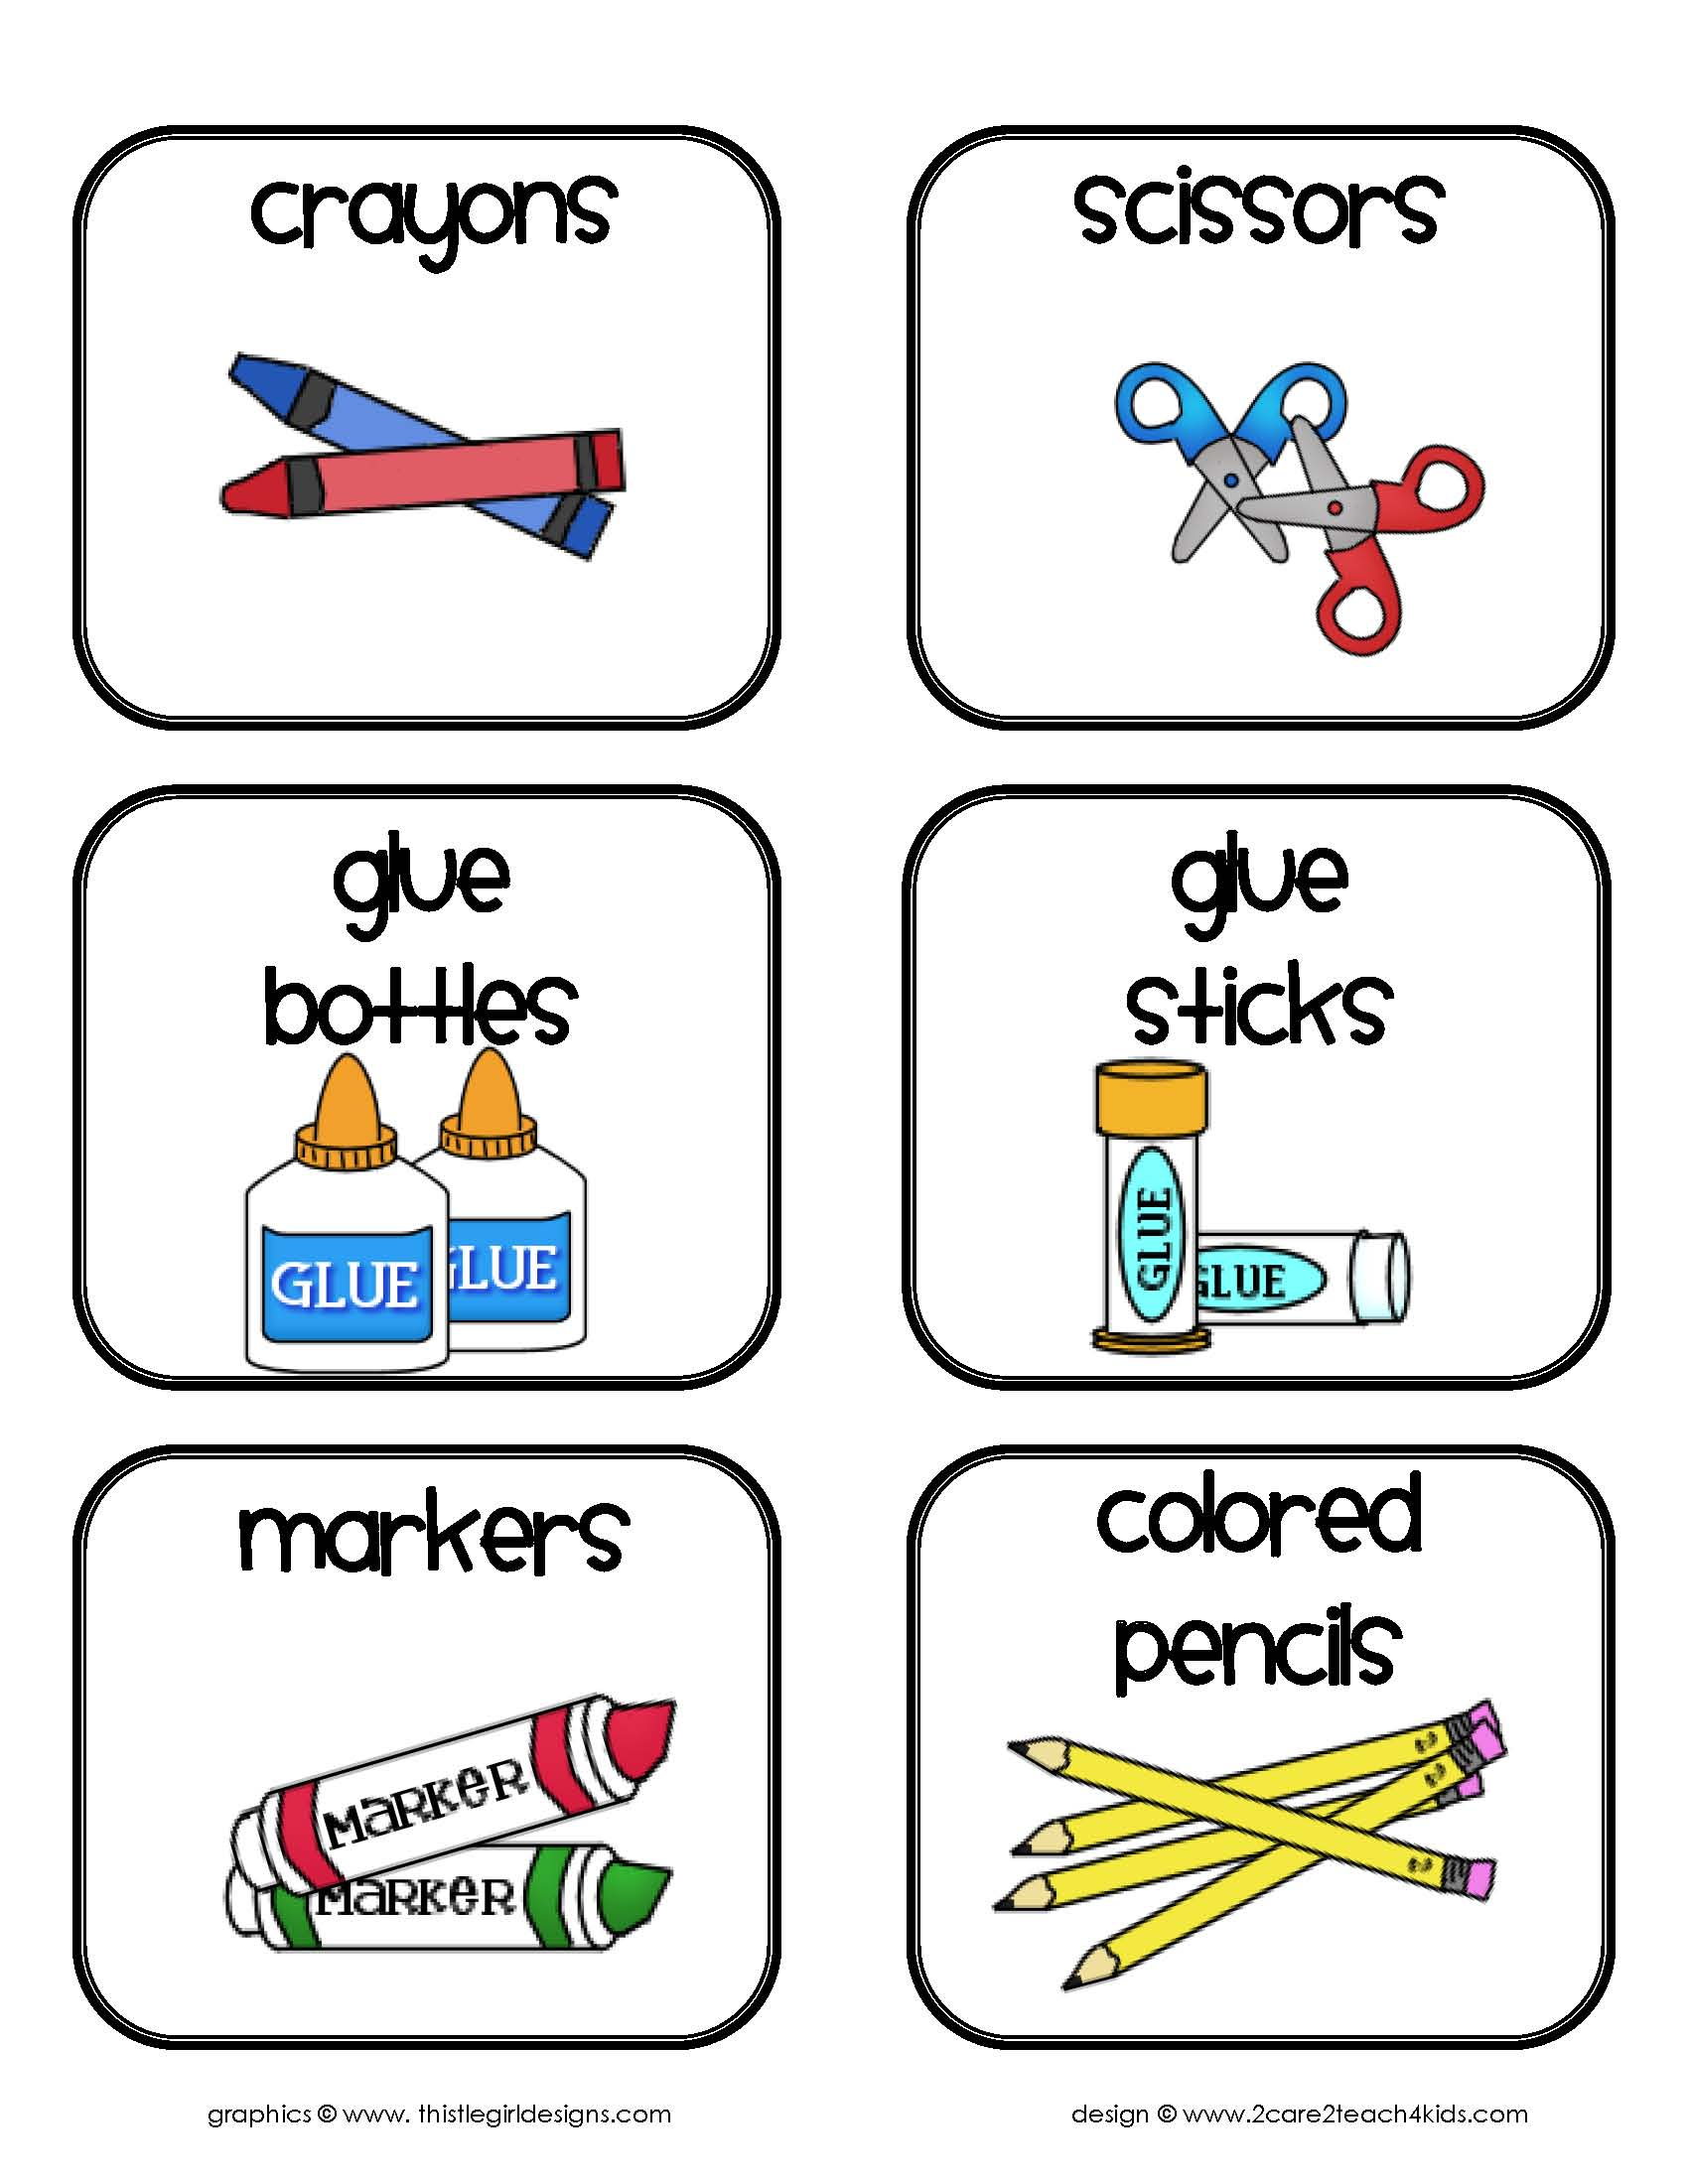 Teacher S Desk  Classroom Management Printables  2care2teach4kids Com